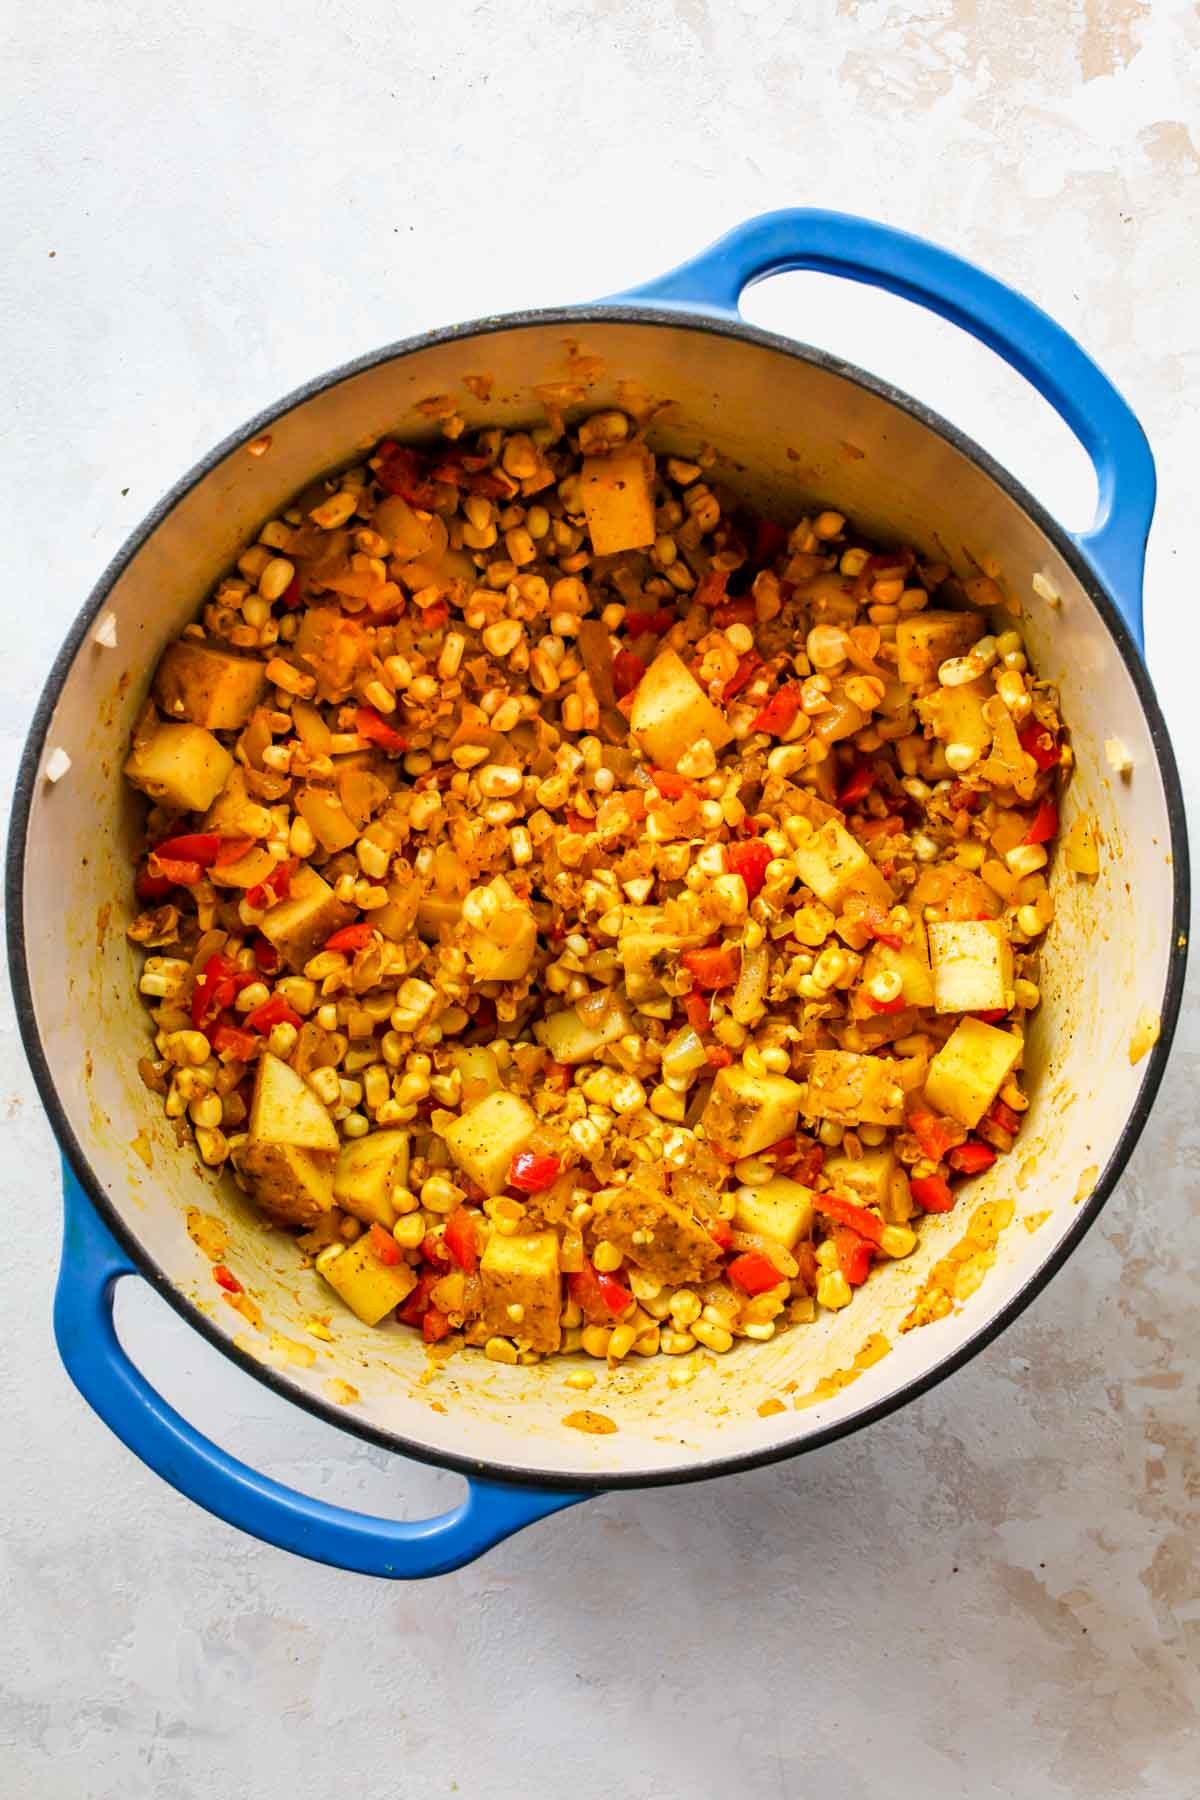 Diced potatoes and corn kernels being added to a pot